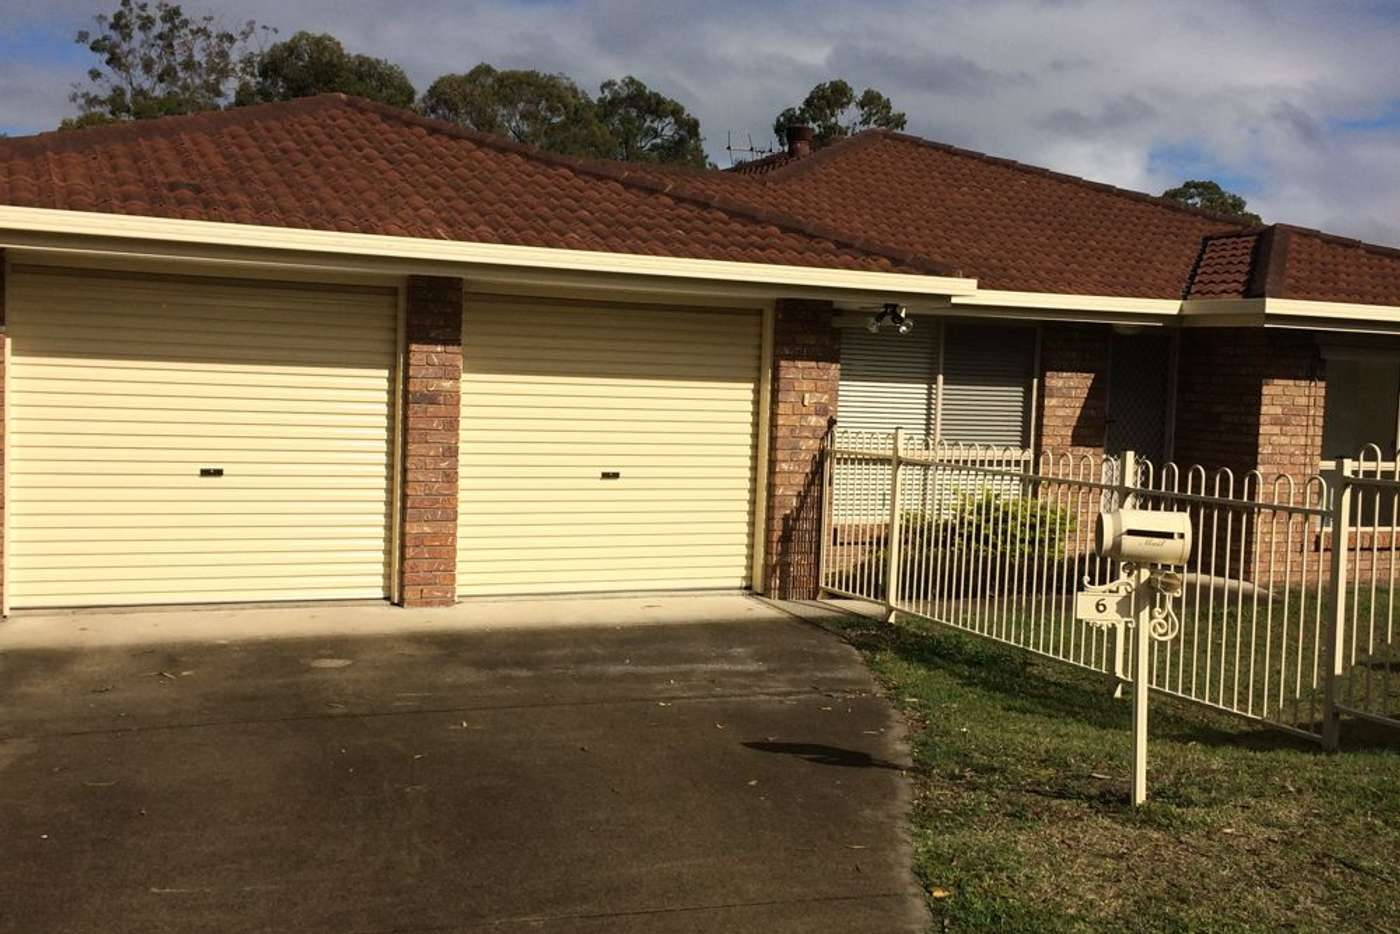 Main view of Homely house listing, 6 Winnecke Close, Forest Lake QLD 4078